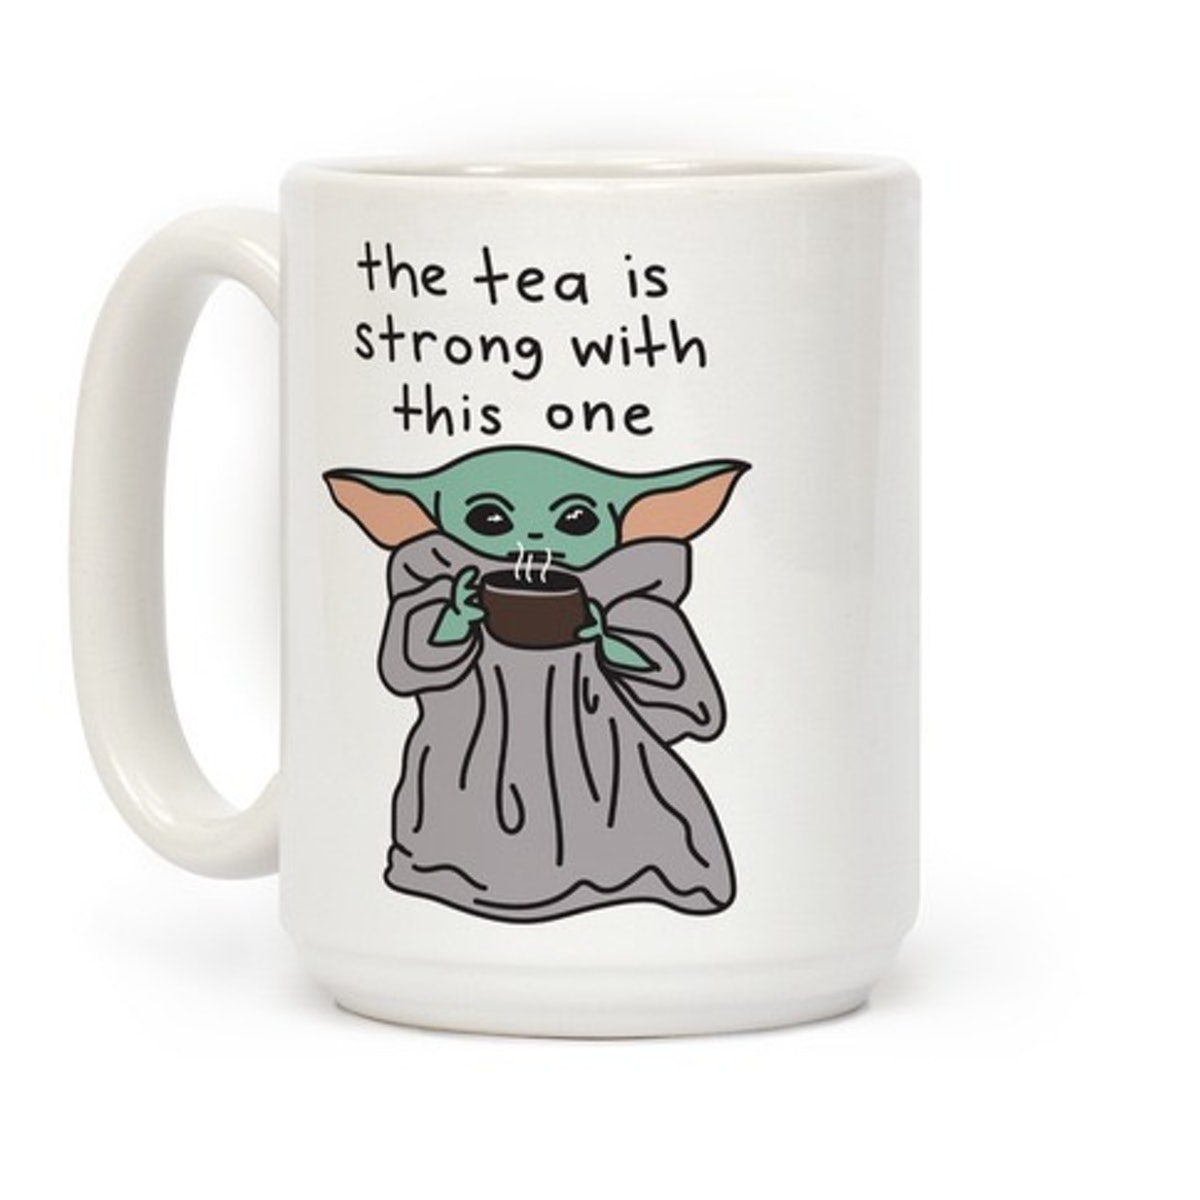 THE TEA IS STRONG WITH THIS ONE (BABY YODA) COFFEE MUG